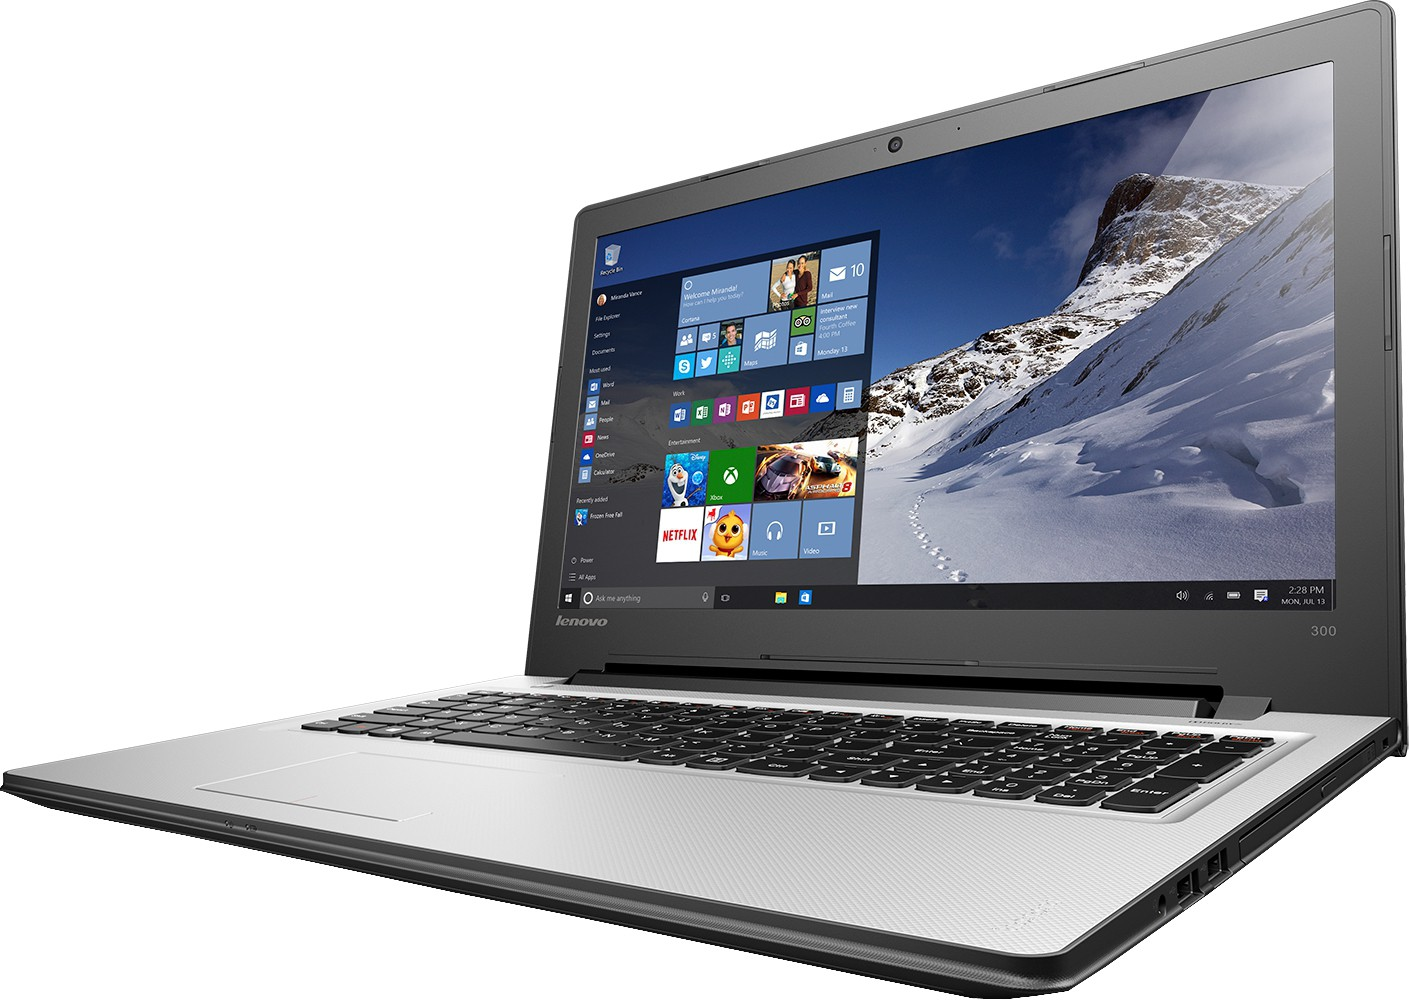 Deals - Jodhpur - Lenovo Laptops <br> Flat ₹ 10000 off on Exchange<br> Category - computers<br> Business - Flipkart.com